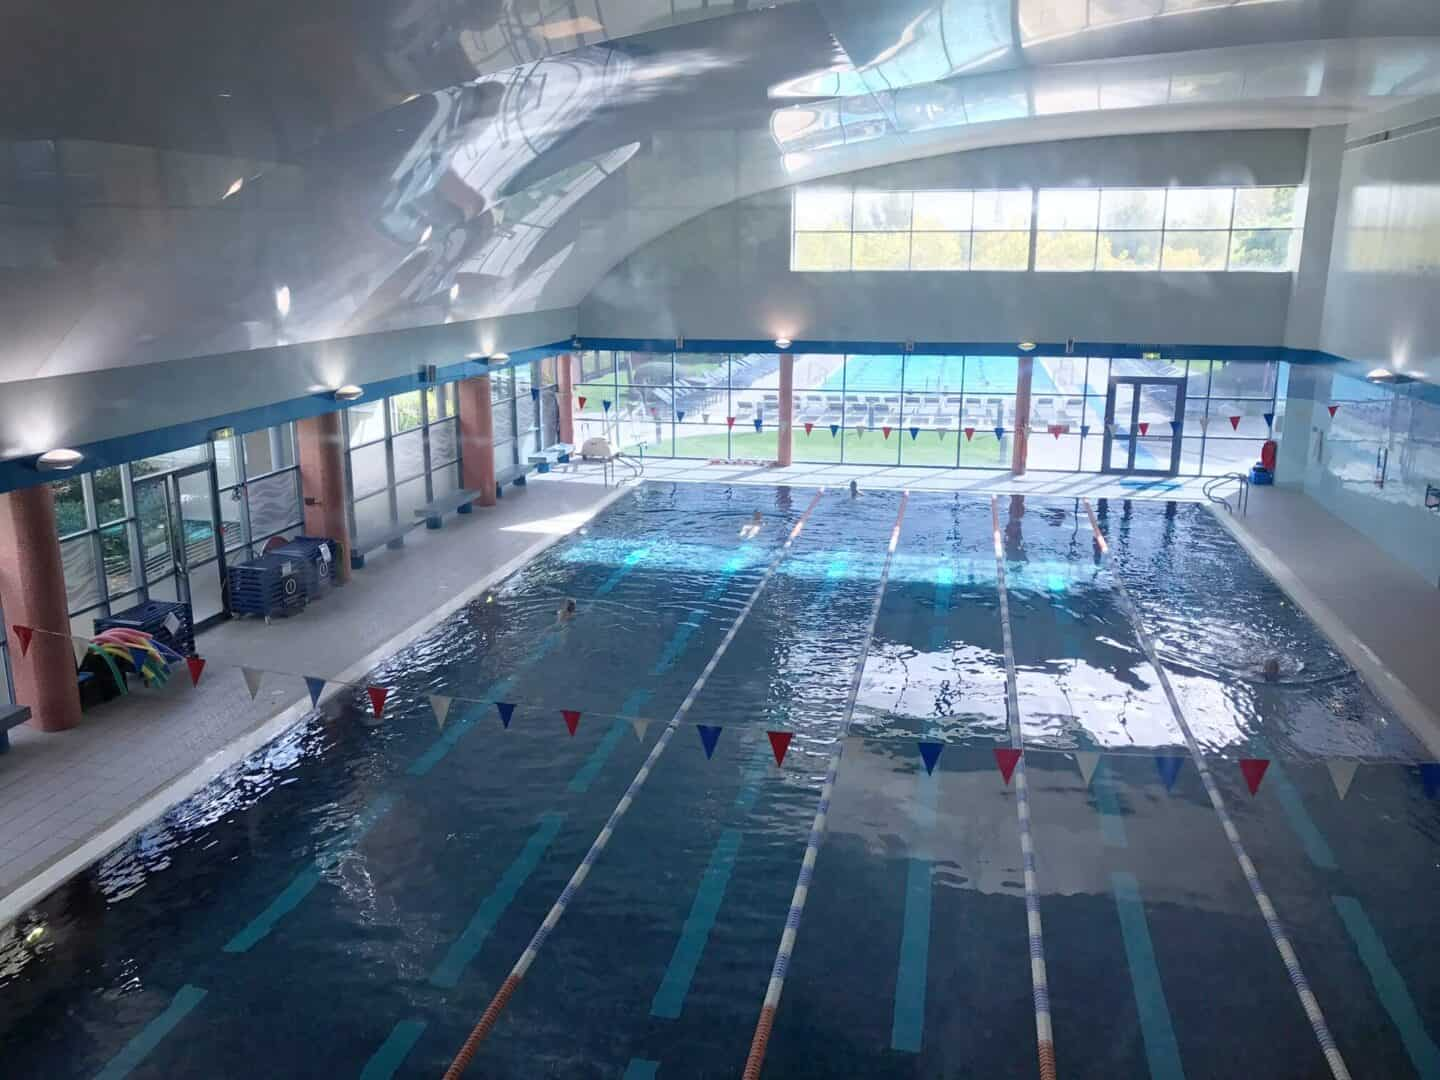 David Lloyd Swimmimg Pool